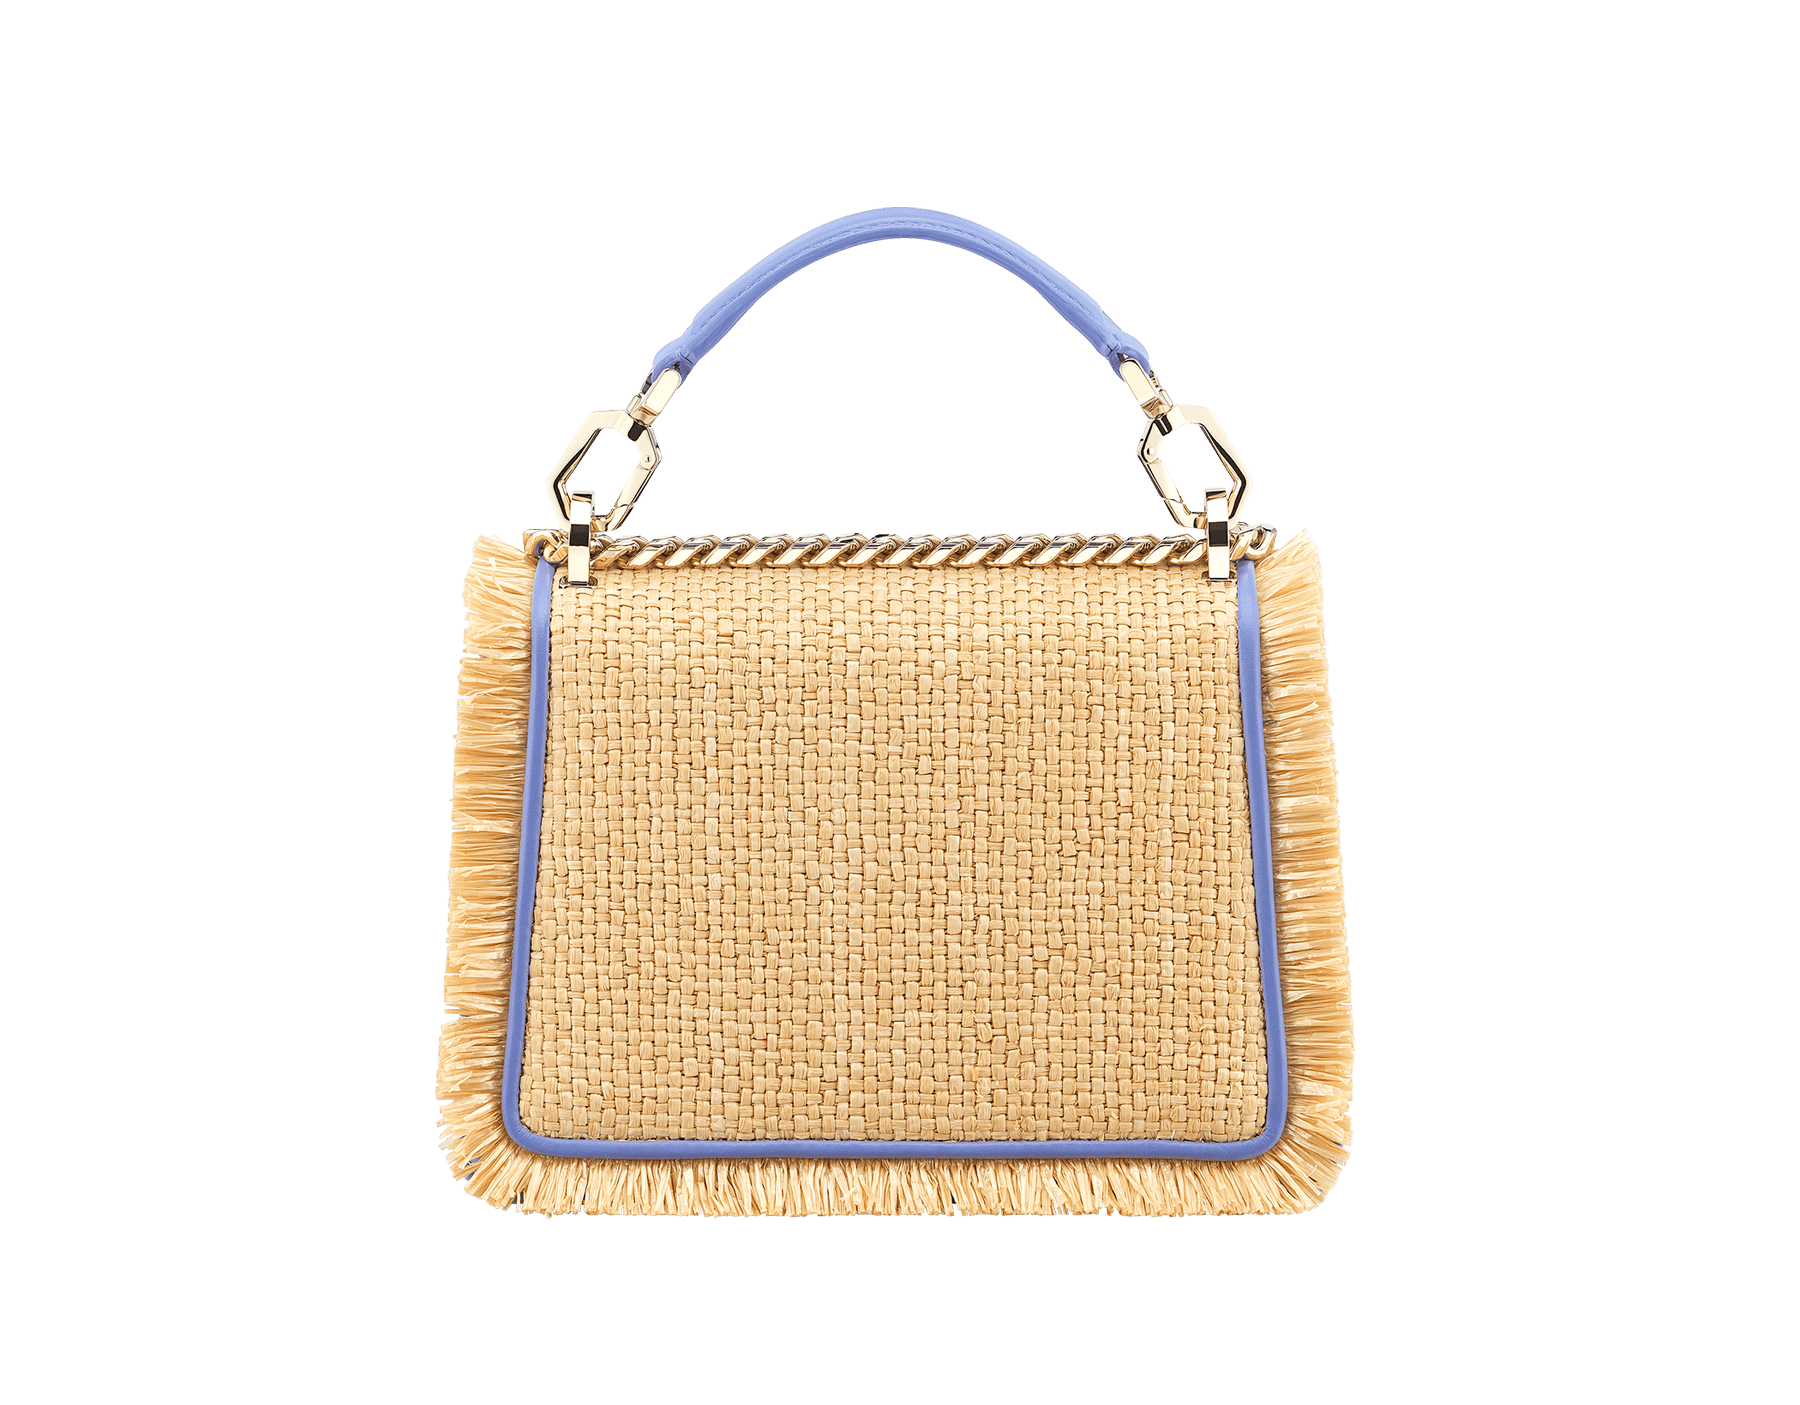 """""""Serpenti Diamond Blast"""" crossbody bag in beige raffia and Lavender Amethyst lilac calfskin frames finished with beige raffia fringes, and Lavender Amethyst lilac nappa leather internal lining. Alluring snakehead closure in light gold-plated brass, enhanced with full matte Natural beige enamel and black onyx eyes. 290907 image 3"""